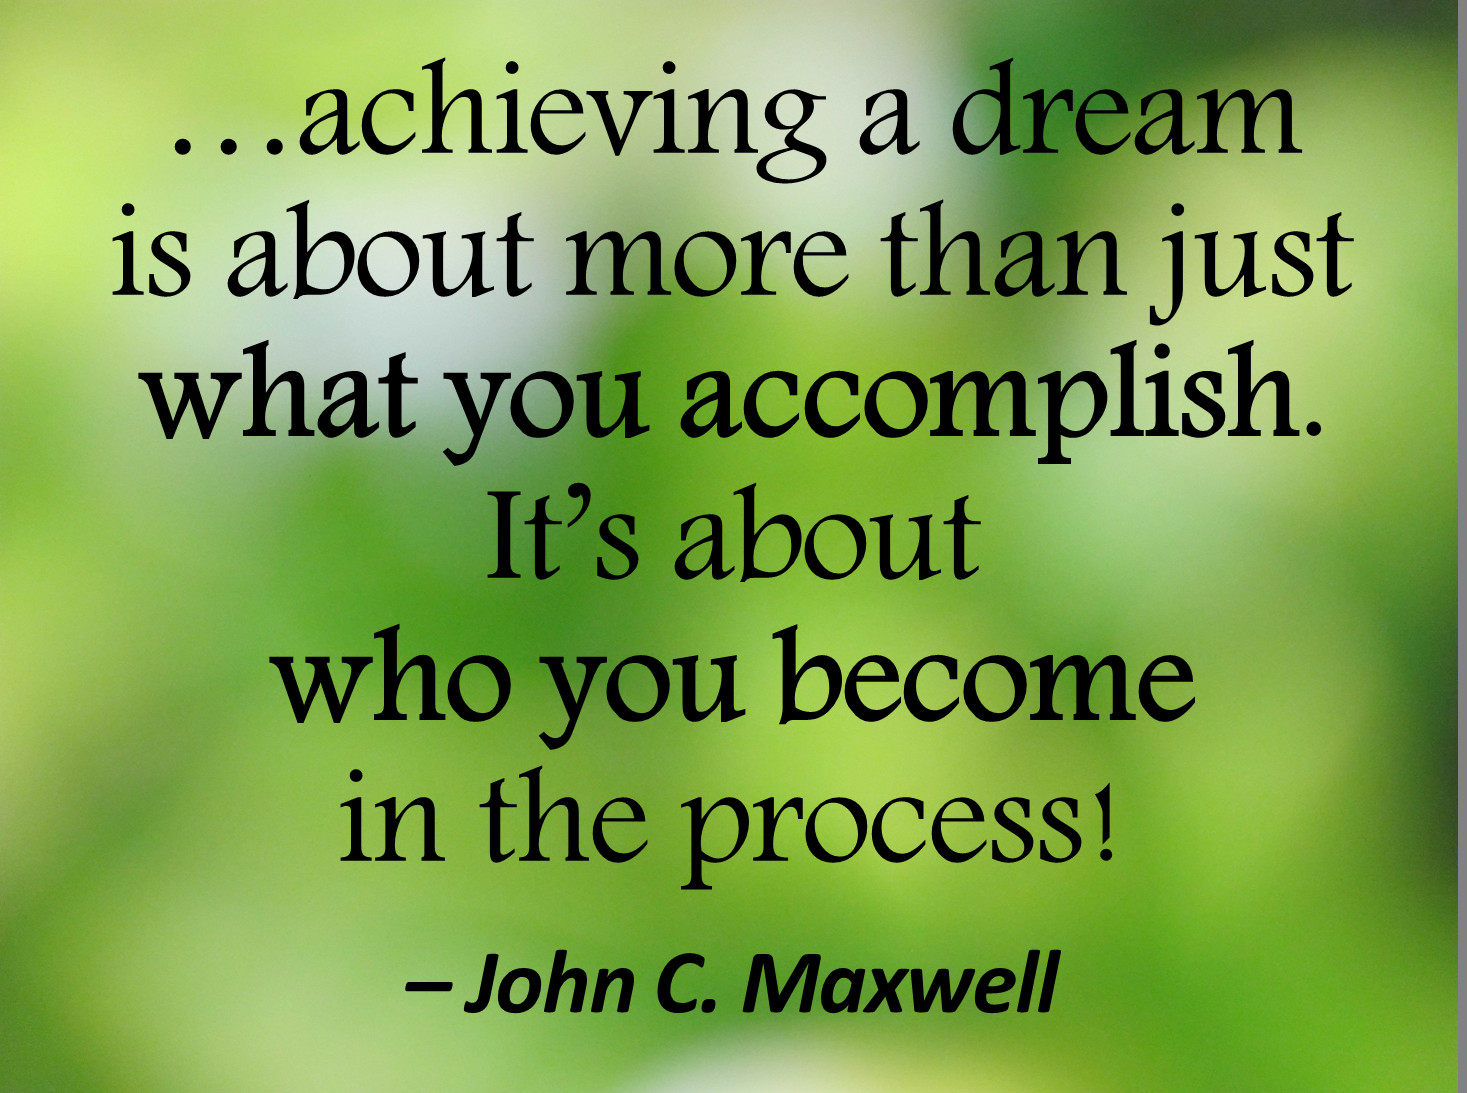 John Maxwell Quotes On Leadership  Do the work and keep showing up